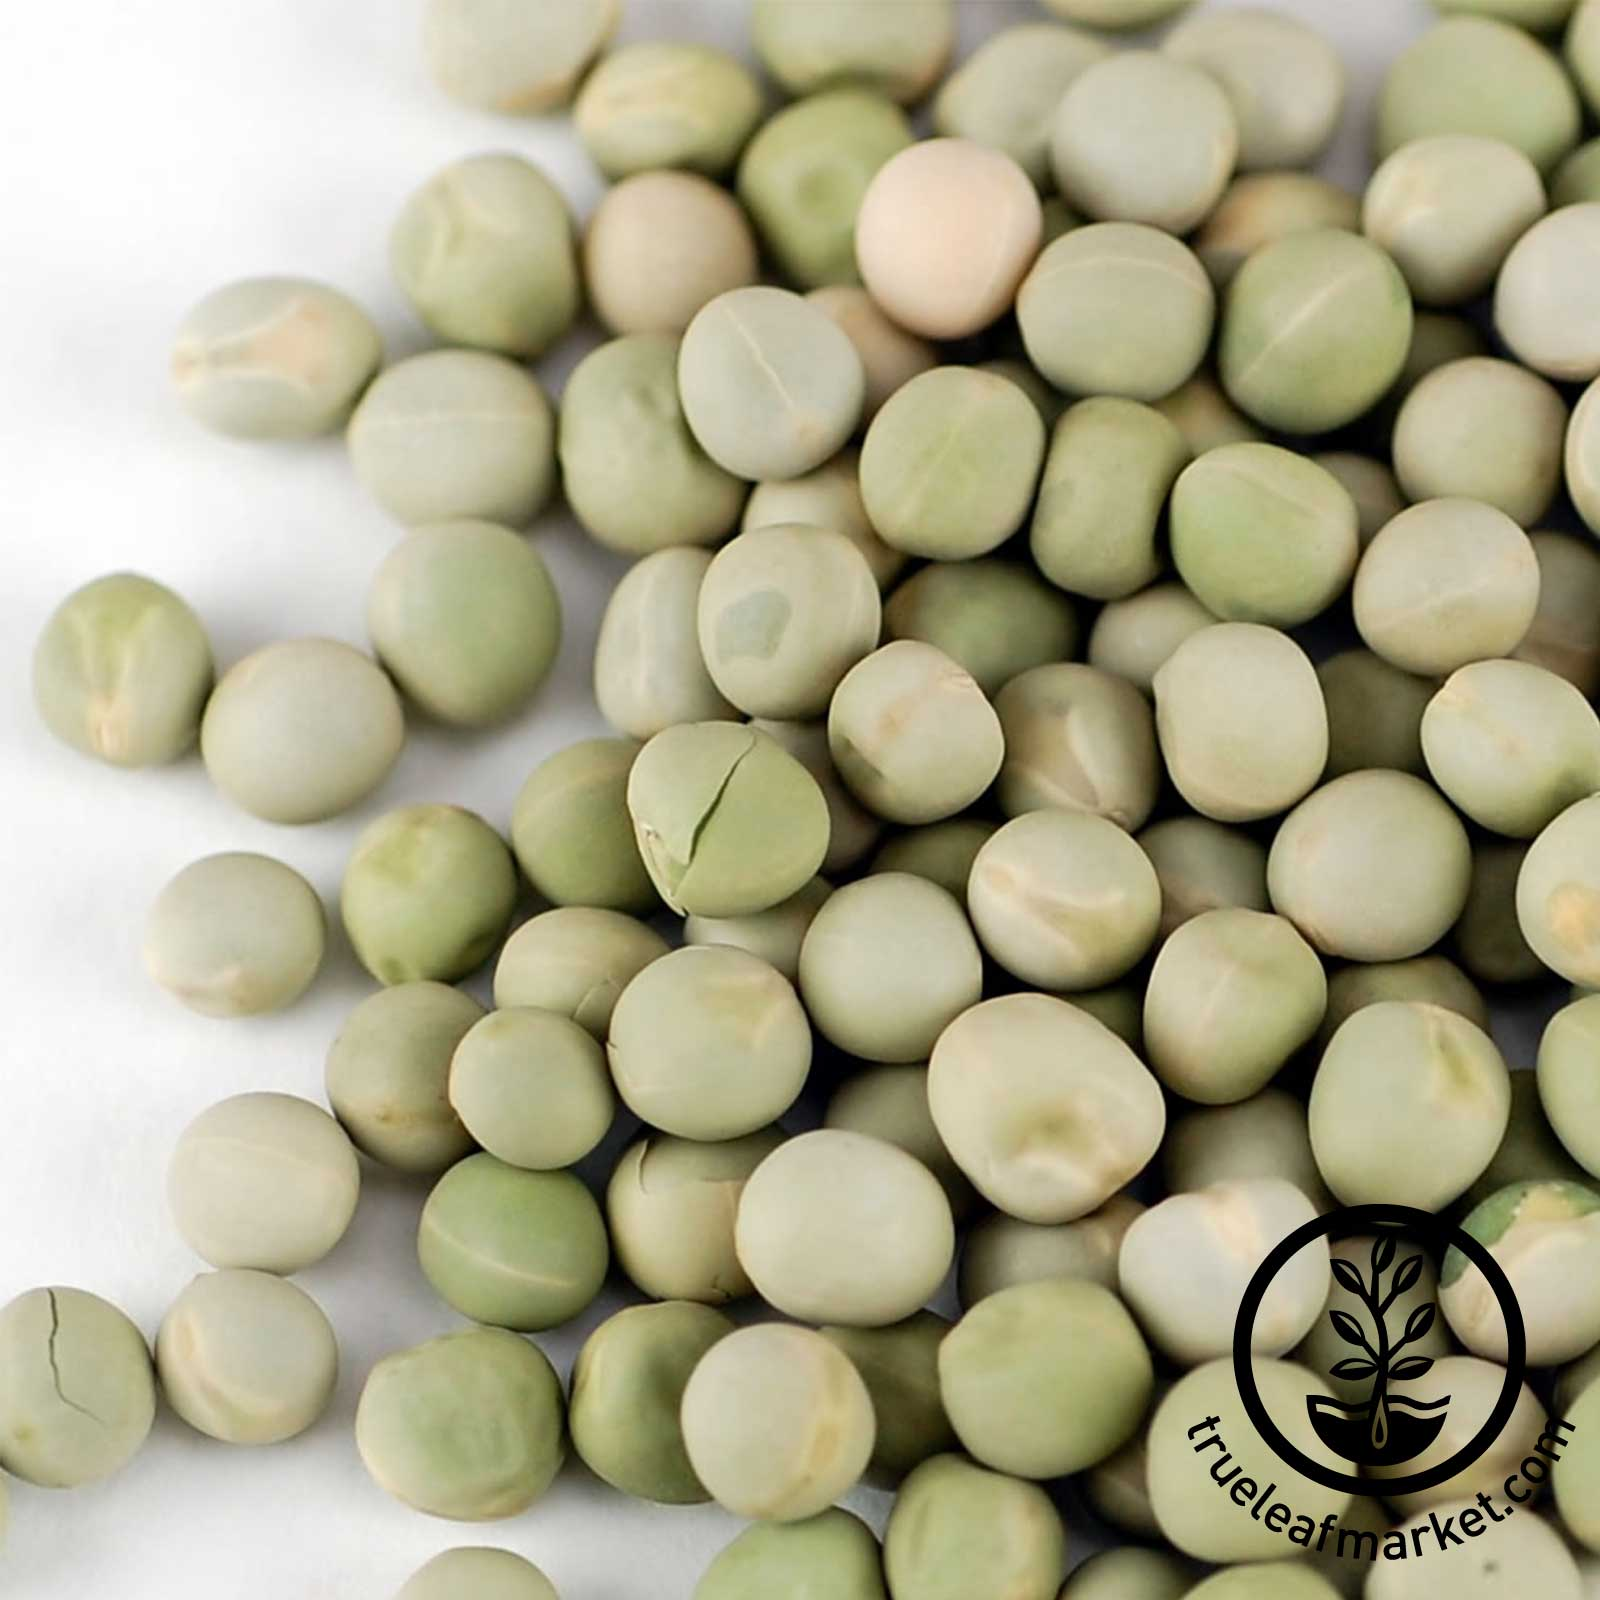 Green Pea Sprouting Seed - Organic